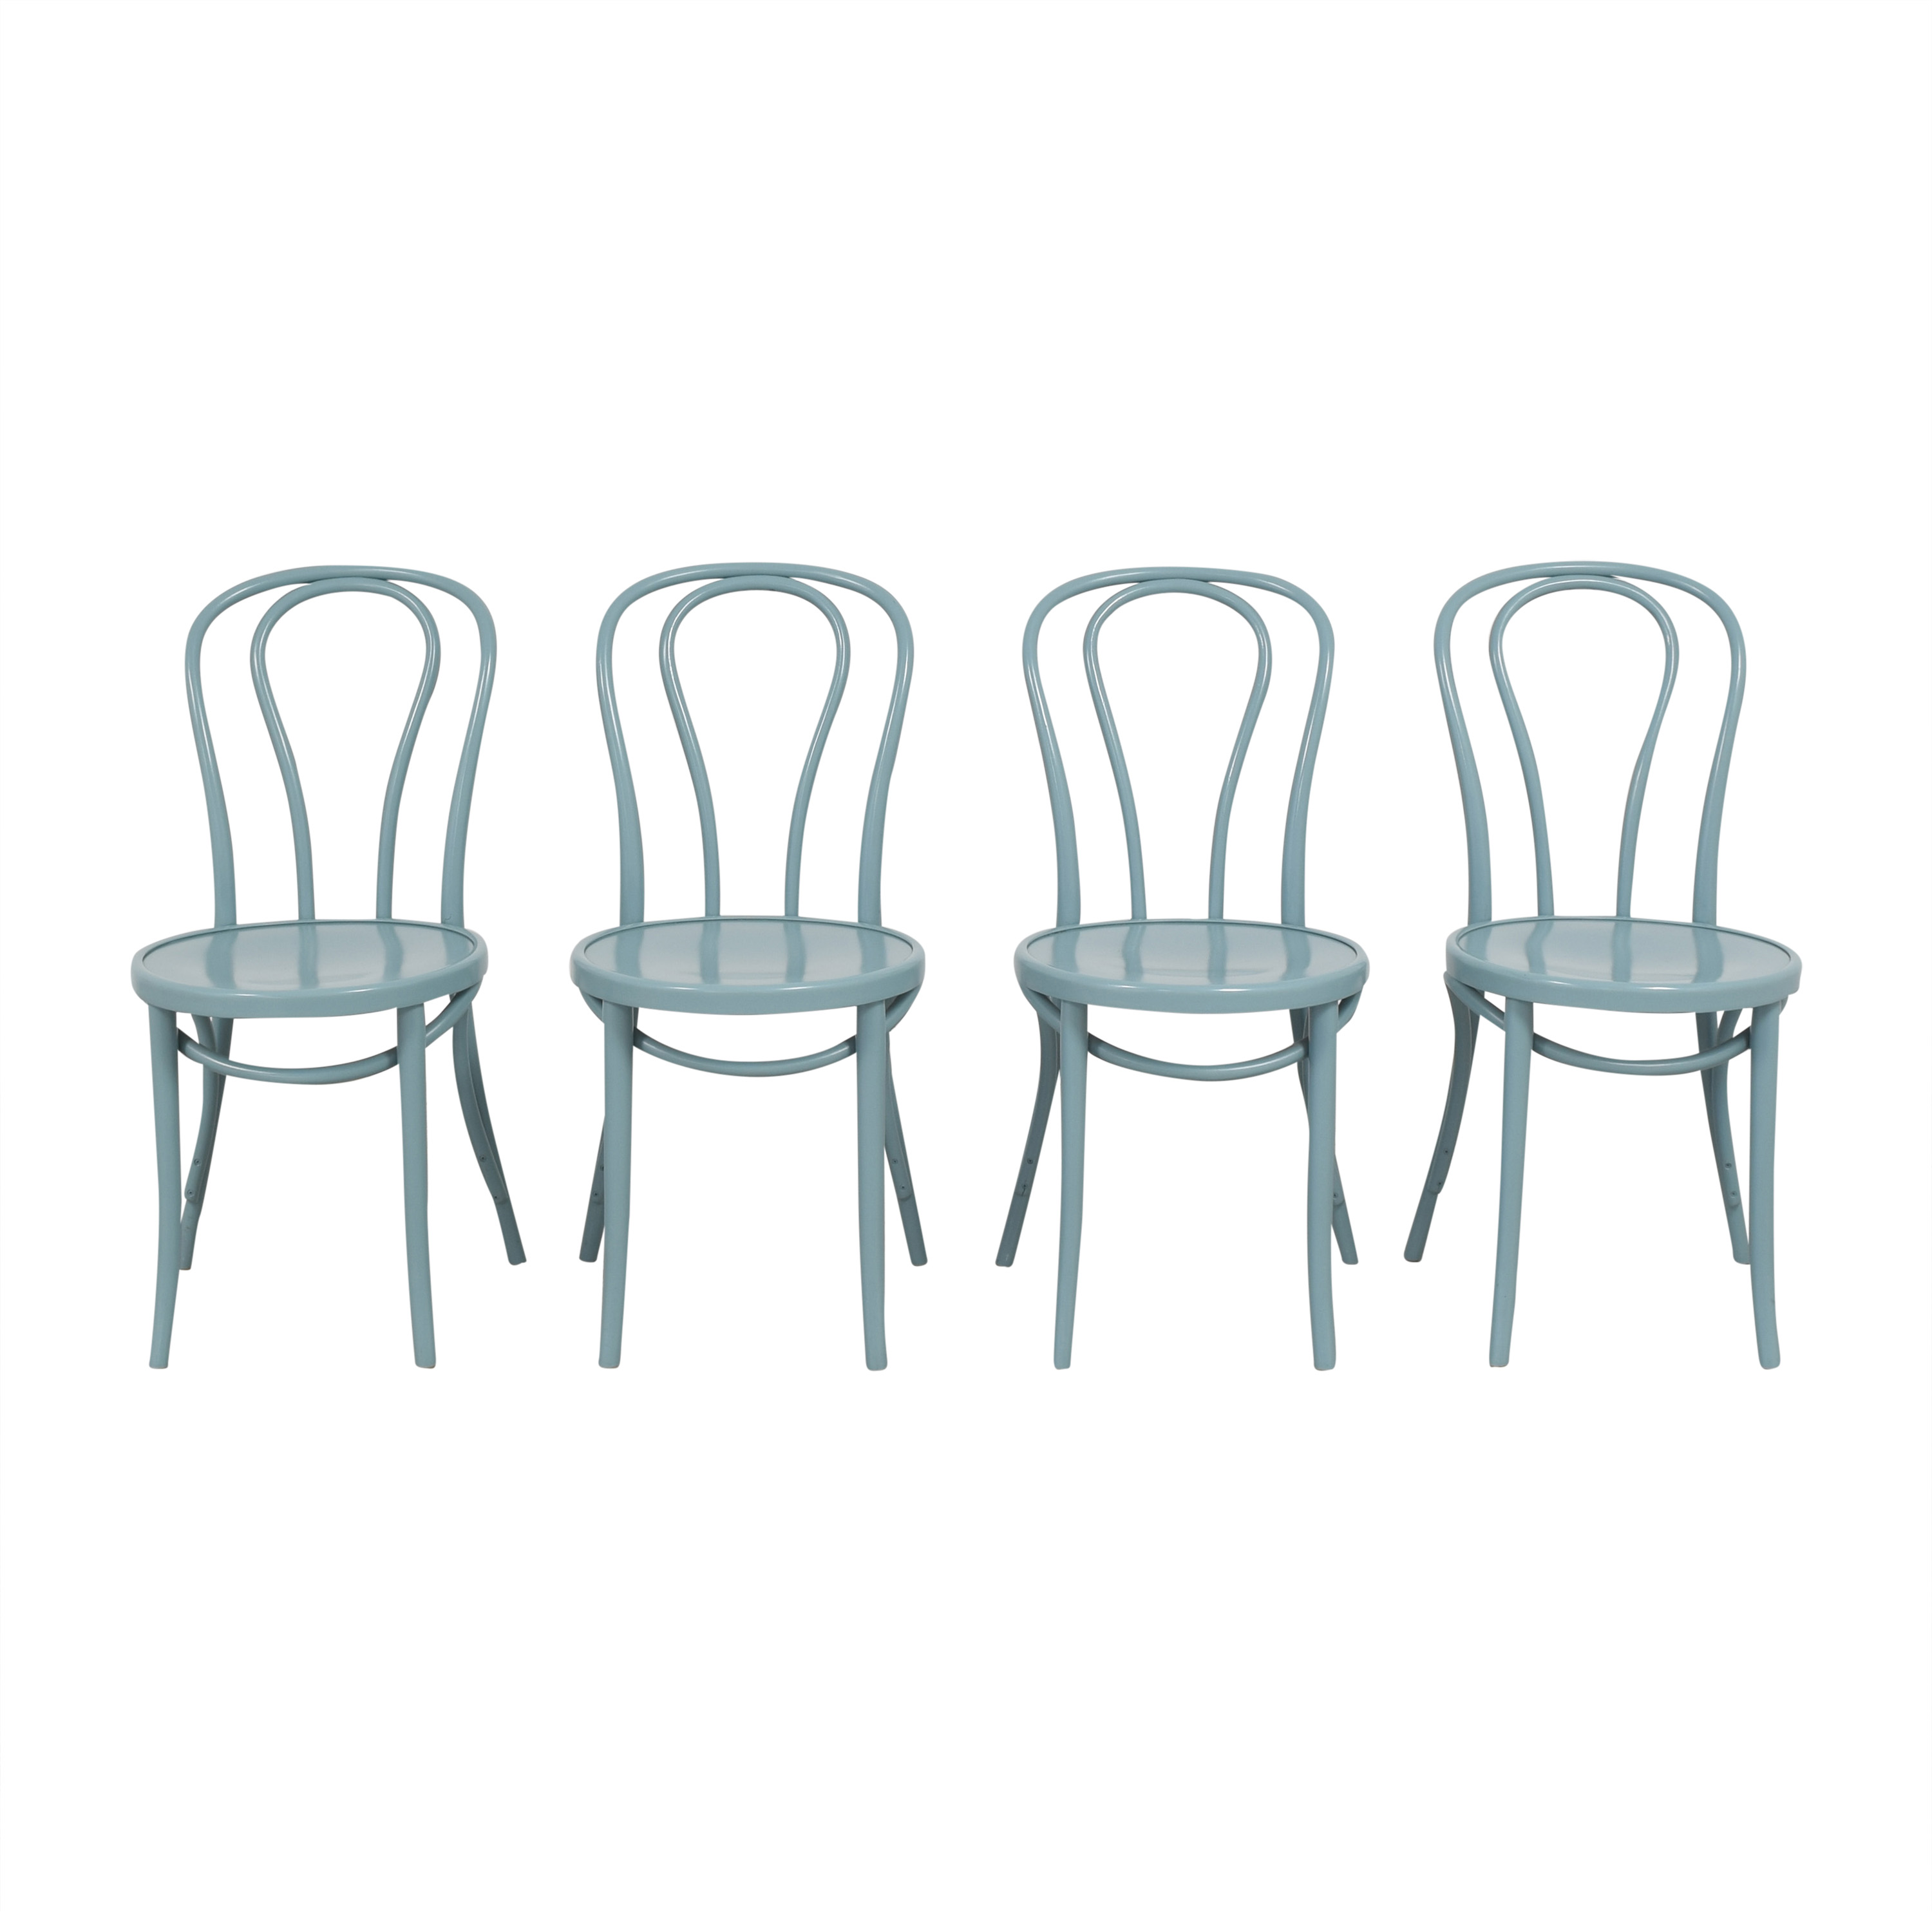 Crate & Barrel Crate & Barrel Vienna Dining Chairs coupon